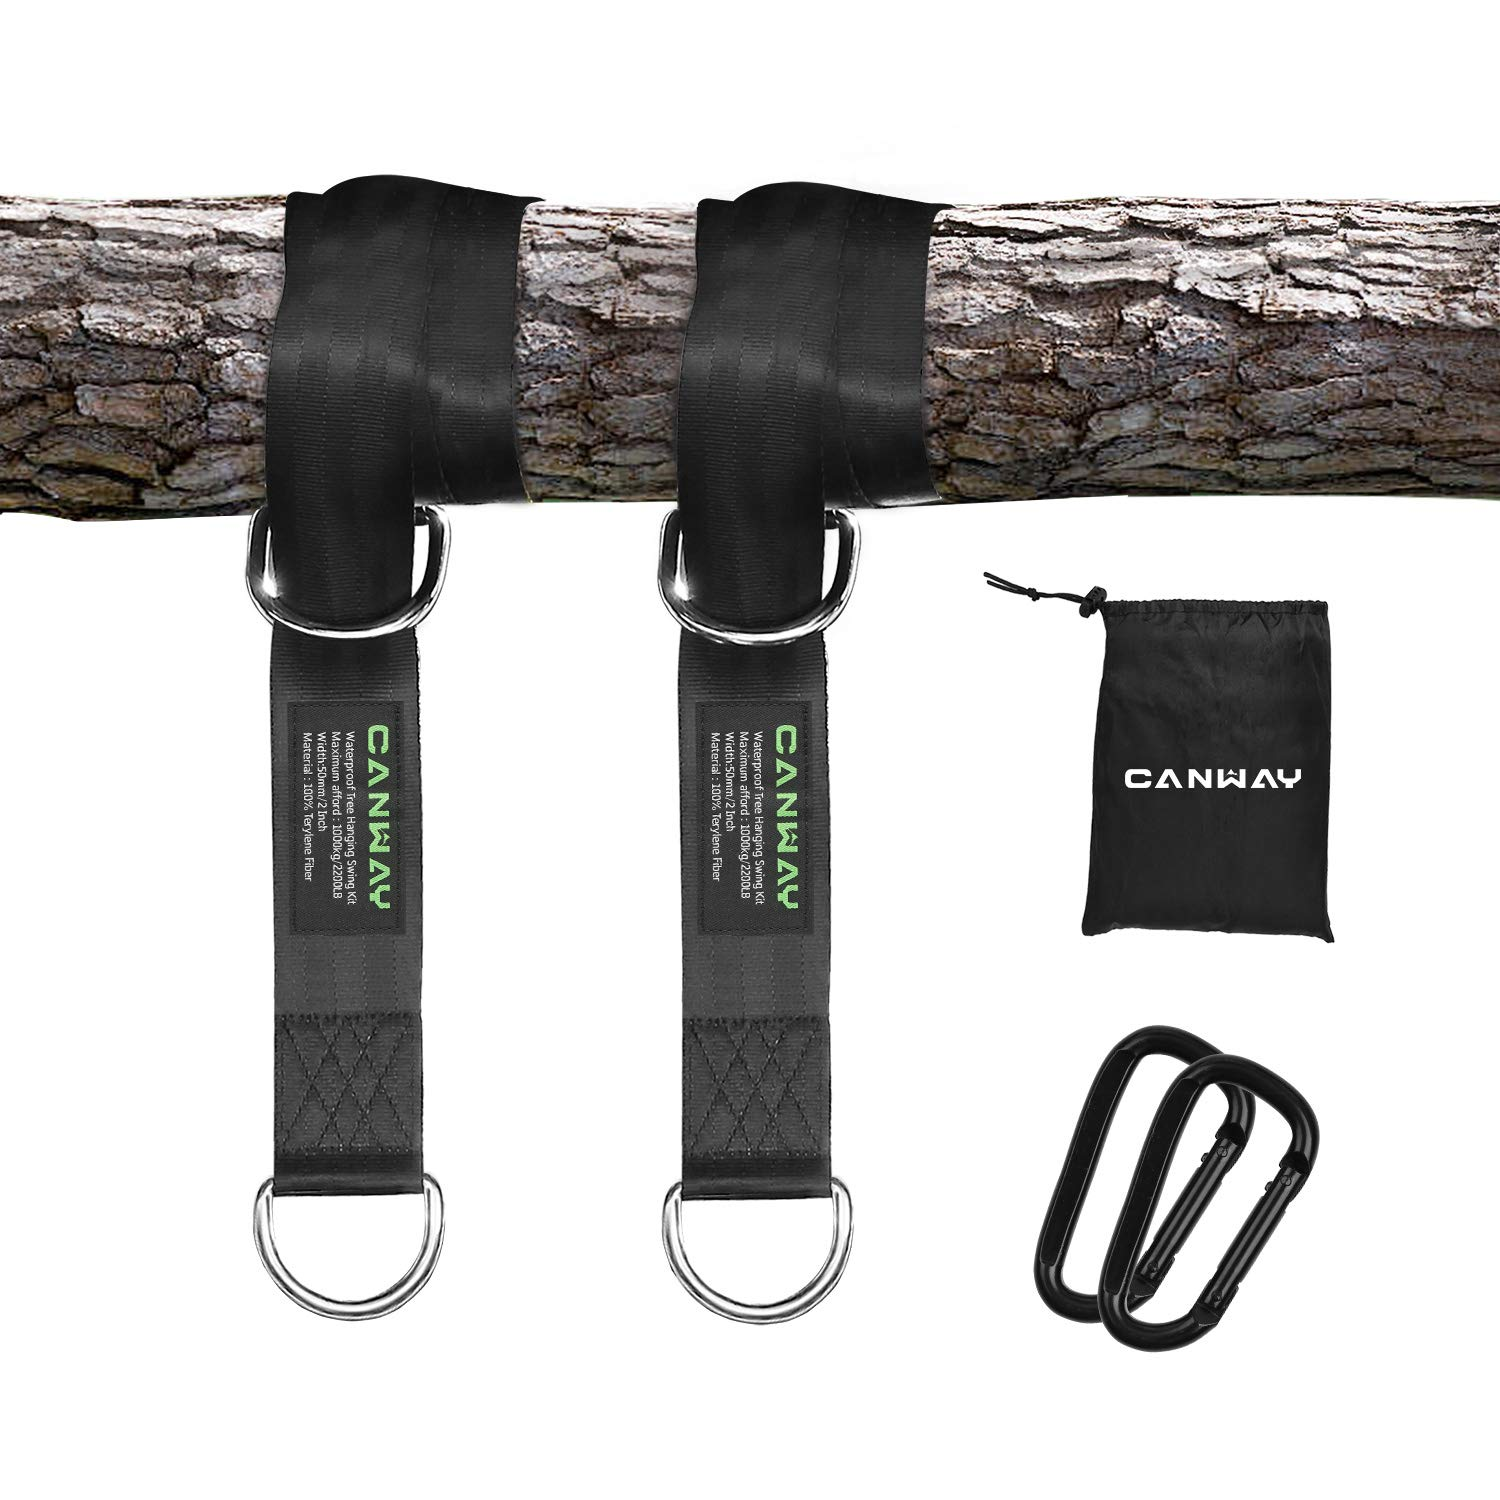 CANWAY Set of 2 Tree Swing Straps Hanging Kit Holds Max 2200 LB with Two Heavy Duty Carabiners (Stainless Steel) - Camping Hammock Accessories (5ft) by CANWAY